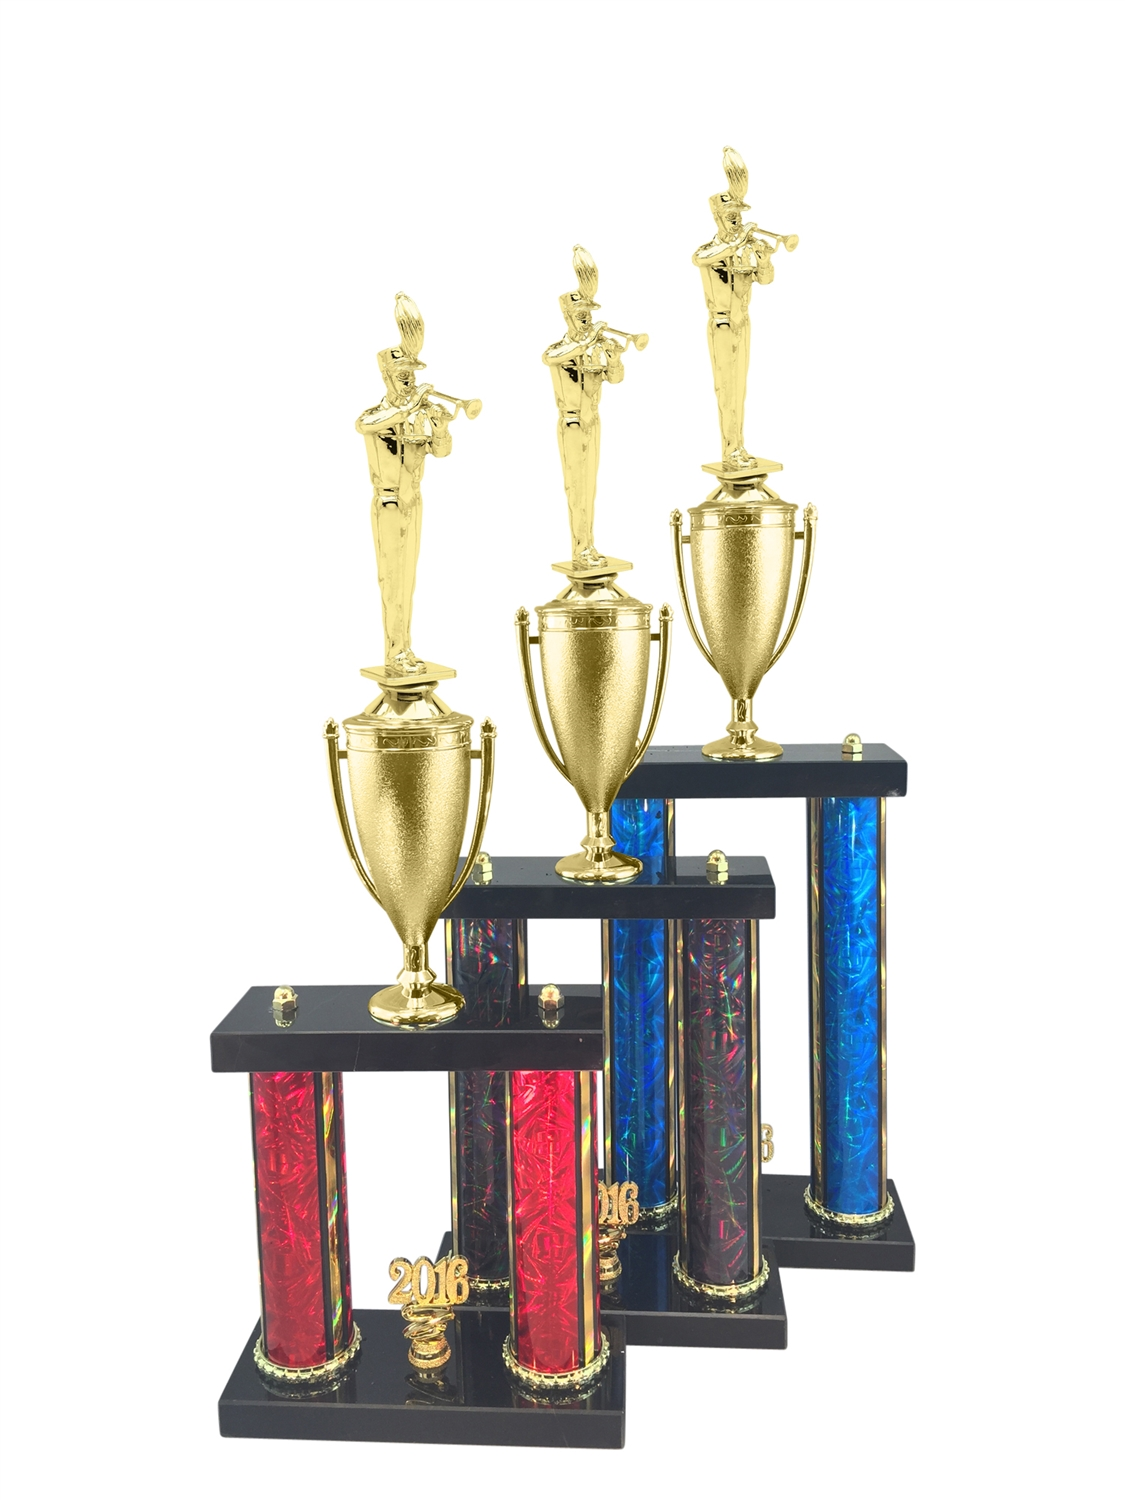 Marching Band Trophy Available in 11 Color & 3 Size Options